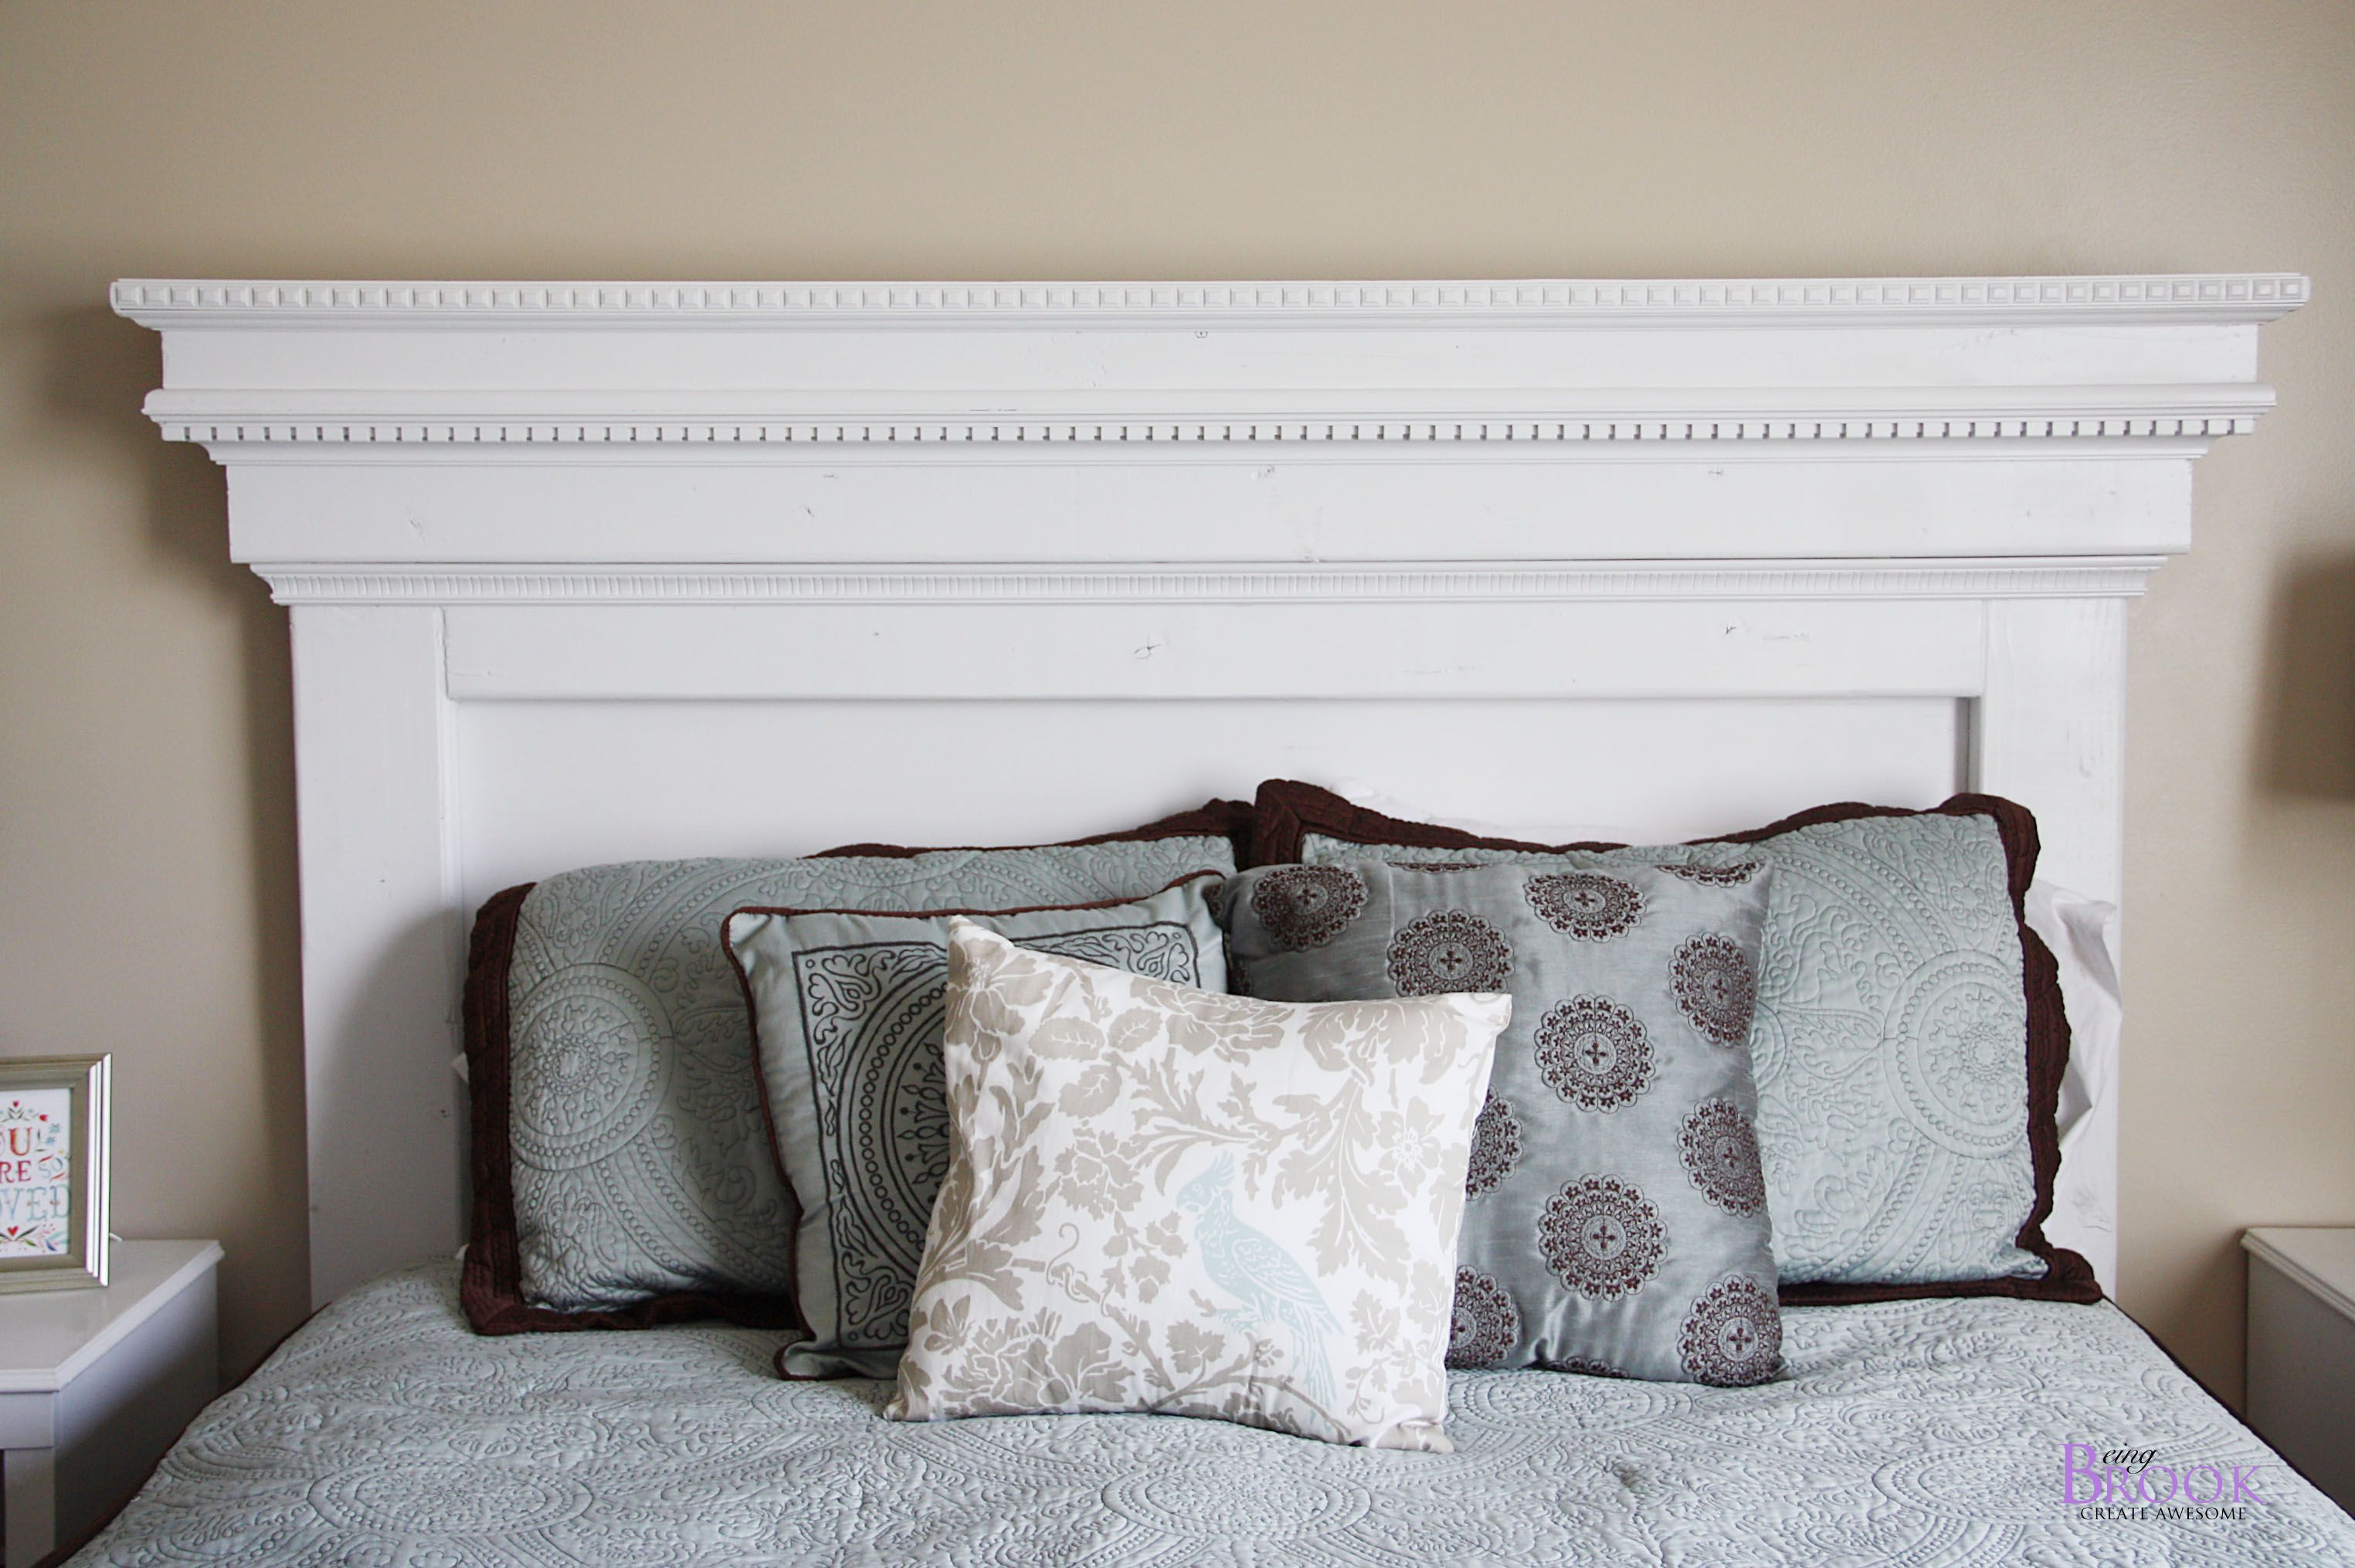 DIYMANTEL MOULDING HEADBOARD Projects For My Husband Pinterest